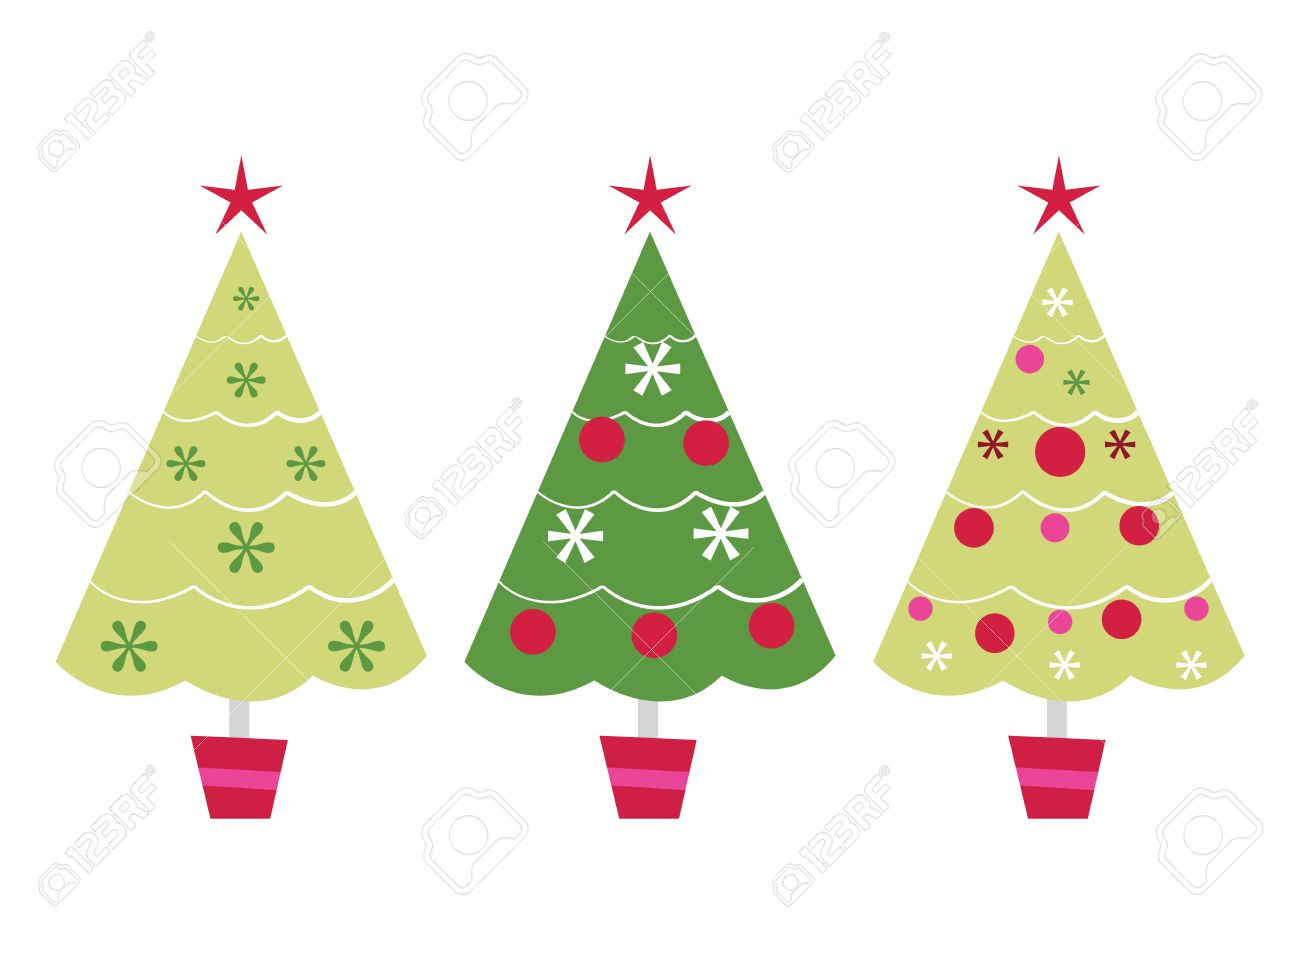 Cute Christmas.A Vector Illustration Set Of Three Cute Christmas Tree In A Row